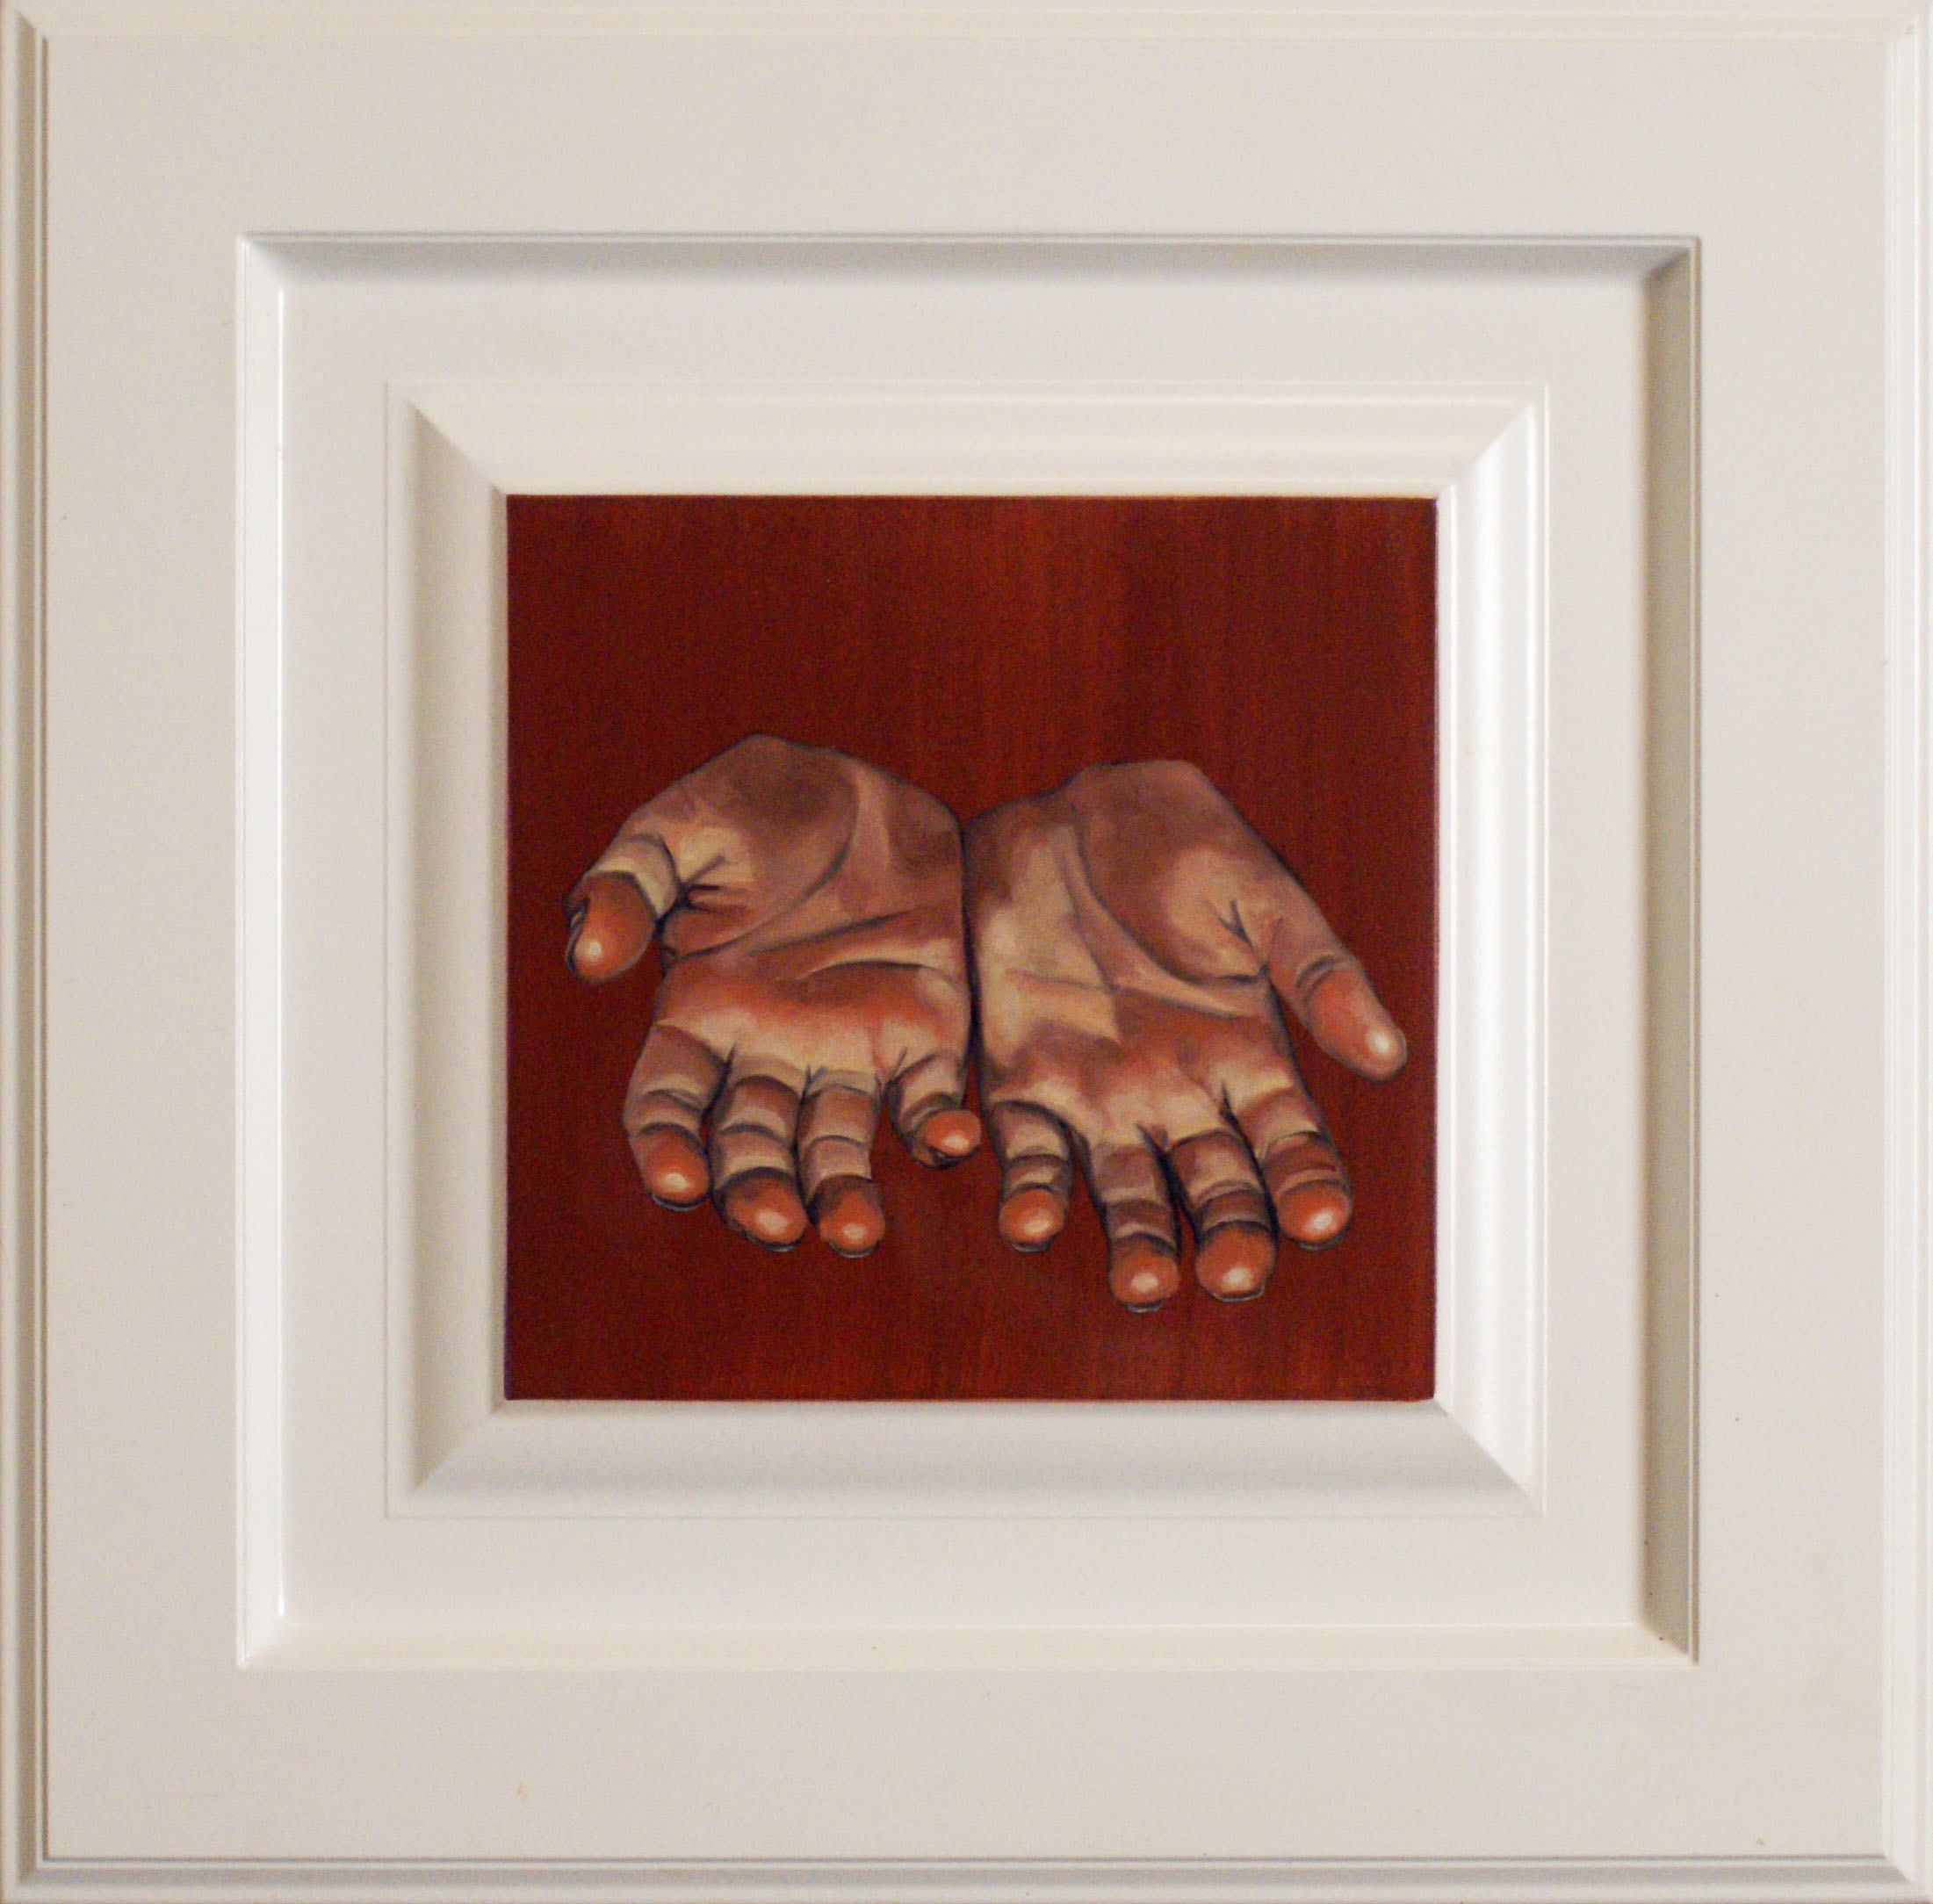 """Hand #6, 14.5"""" x 14.5"""", oil and acrylic on cabinet door, 2014"""